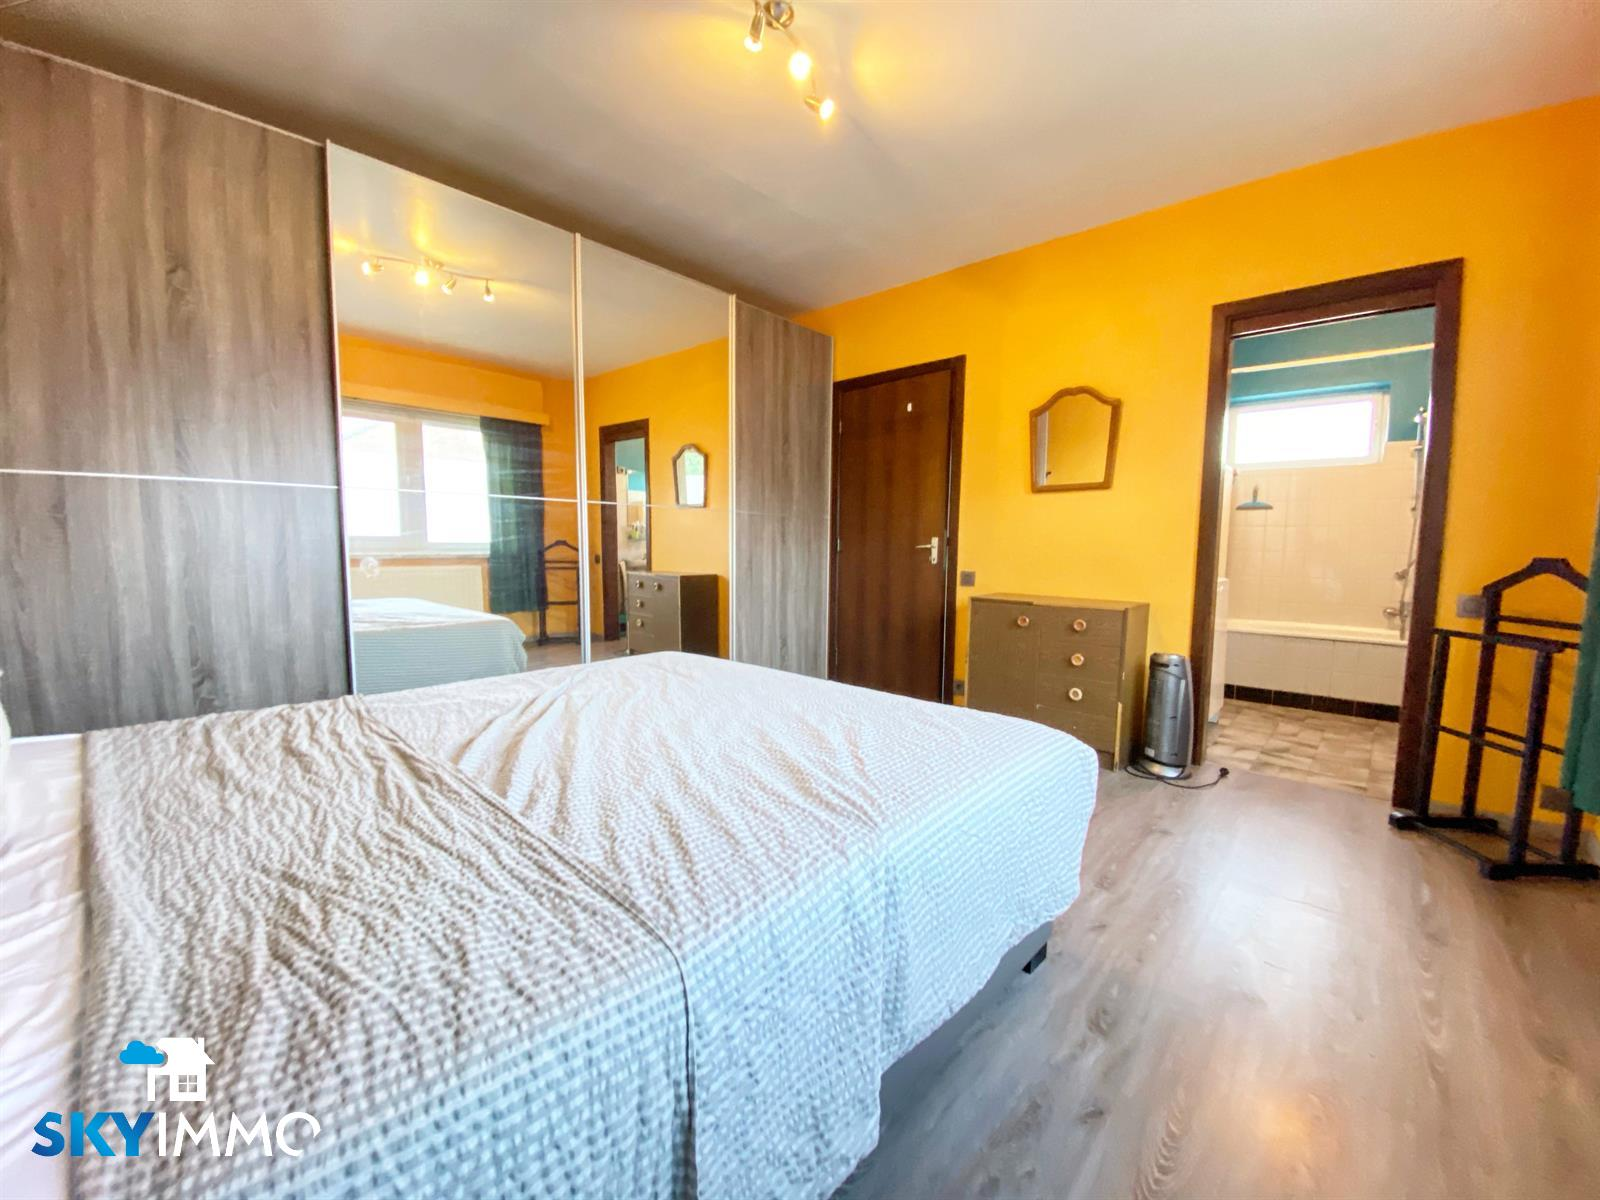 Bungalow - Flemalle - #4363206-20